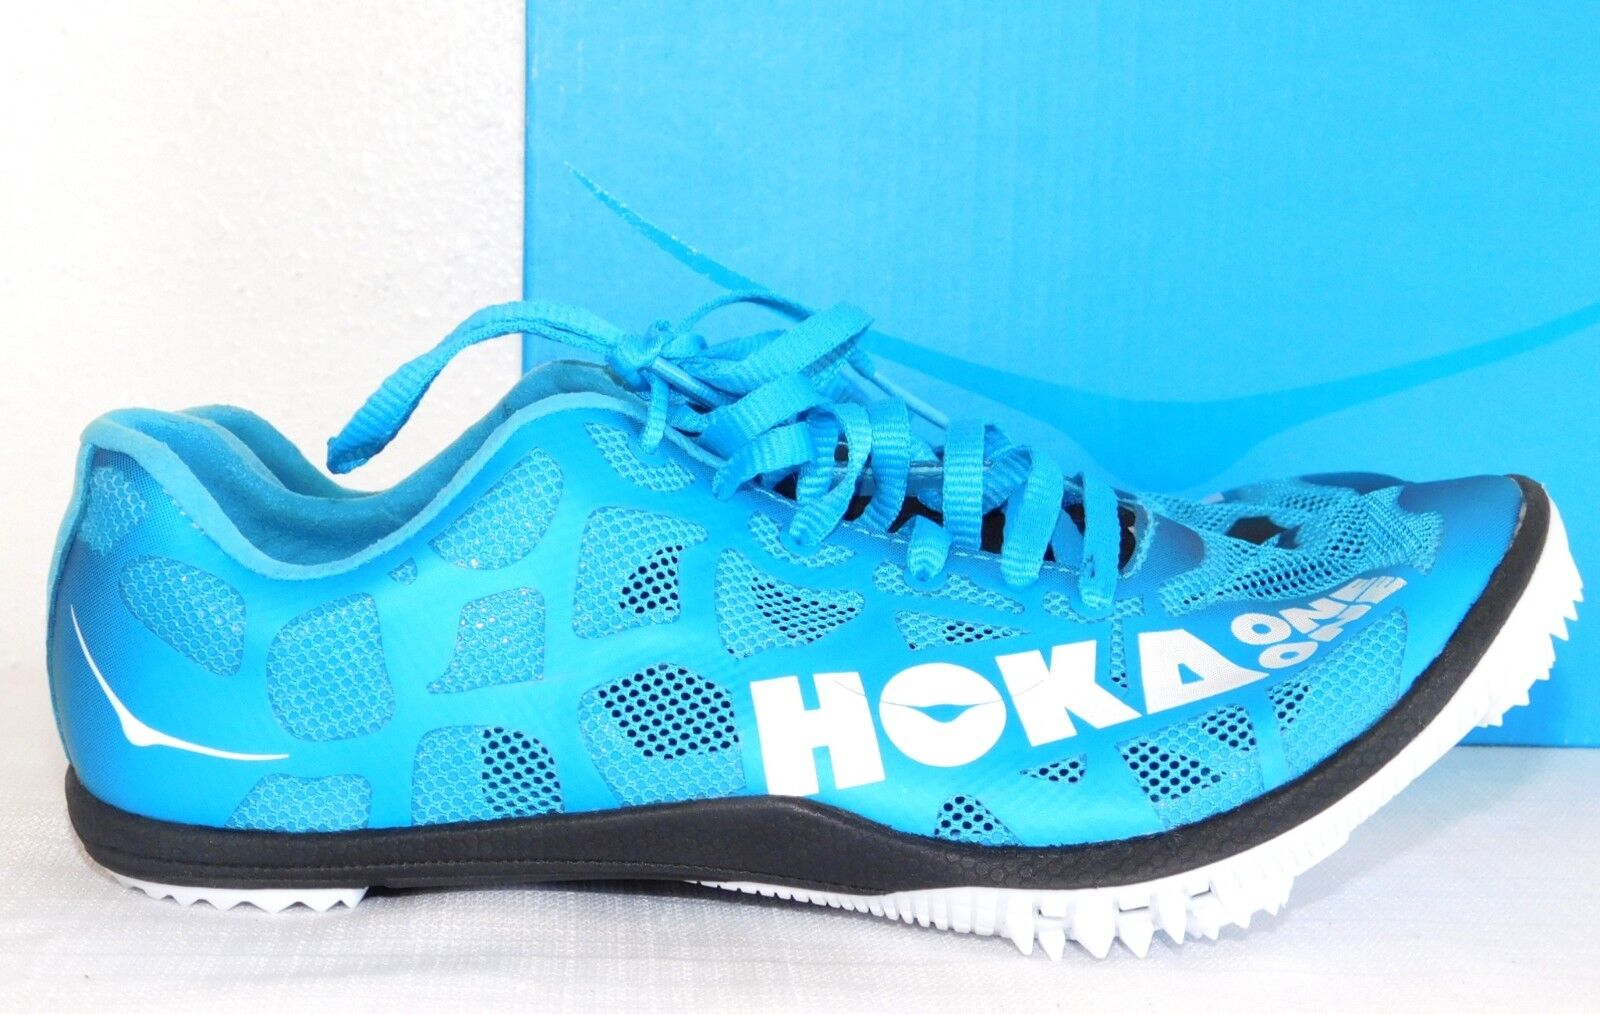 NEW WOMENS SIZE 10 HOKA ONE ONE ROCKET MD SPIKES WHITE CYAN TRACK RUNNING SHOES